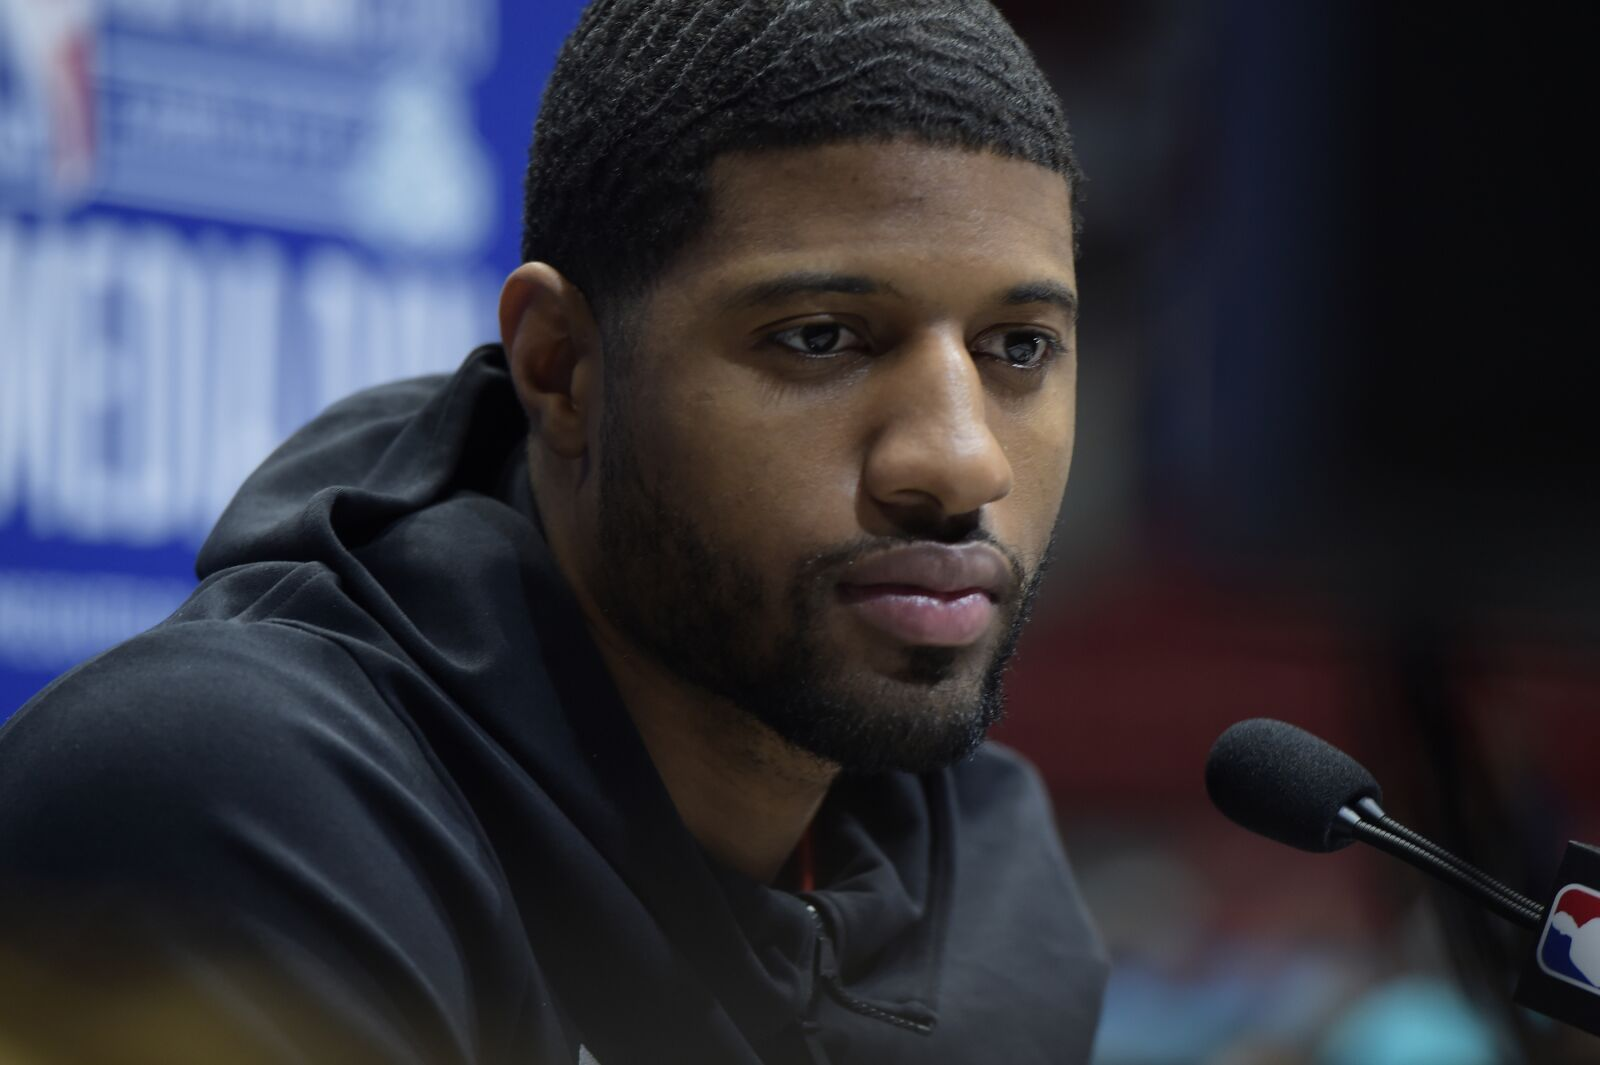 OKC Thunder star Paul George hits center stage at 2019 NBA All-Star Game